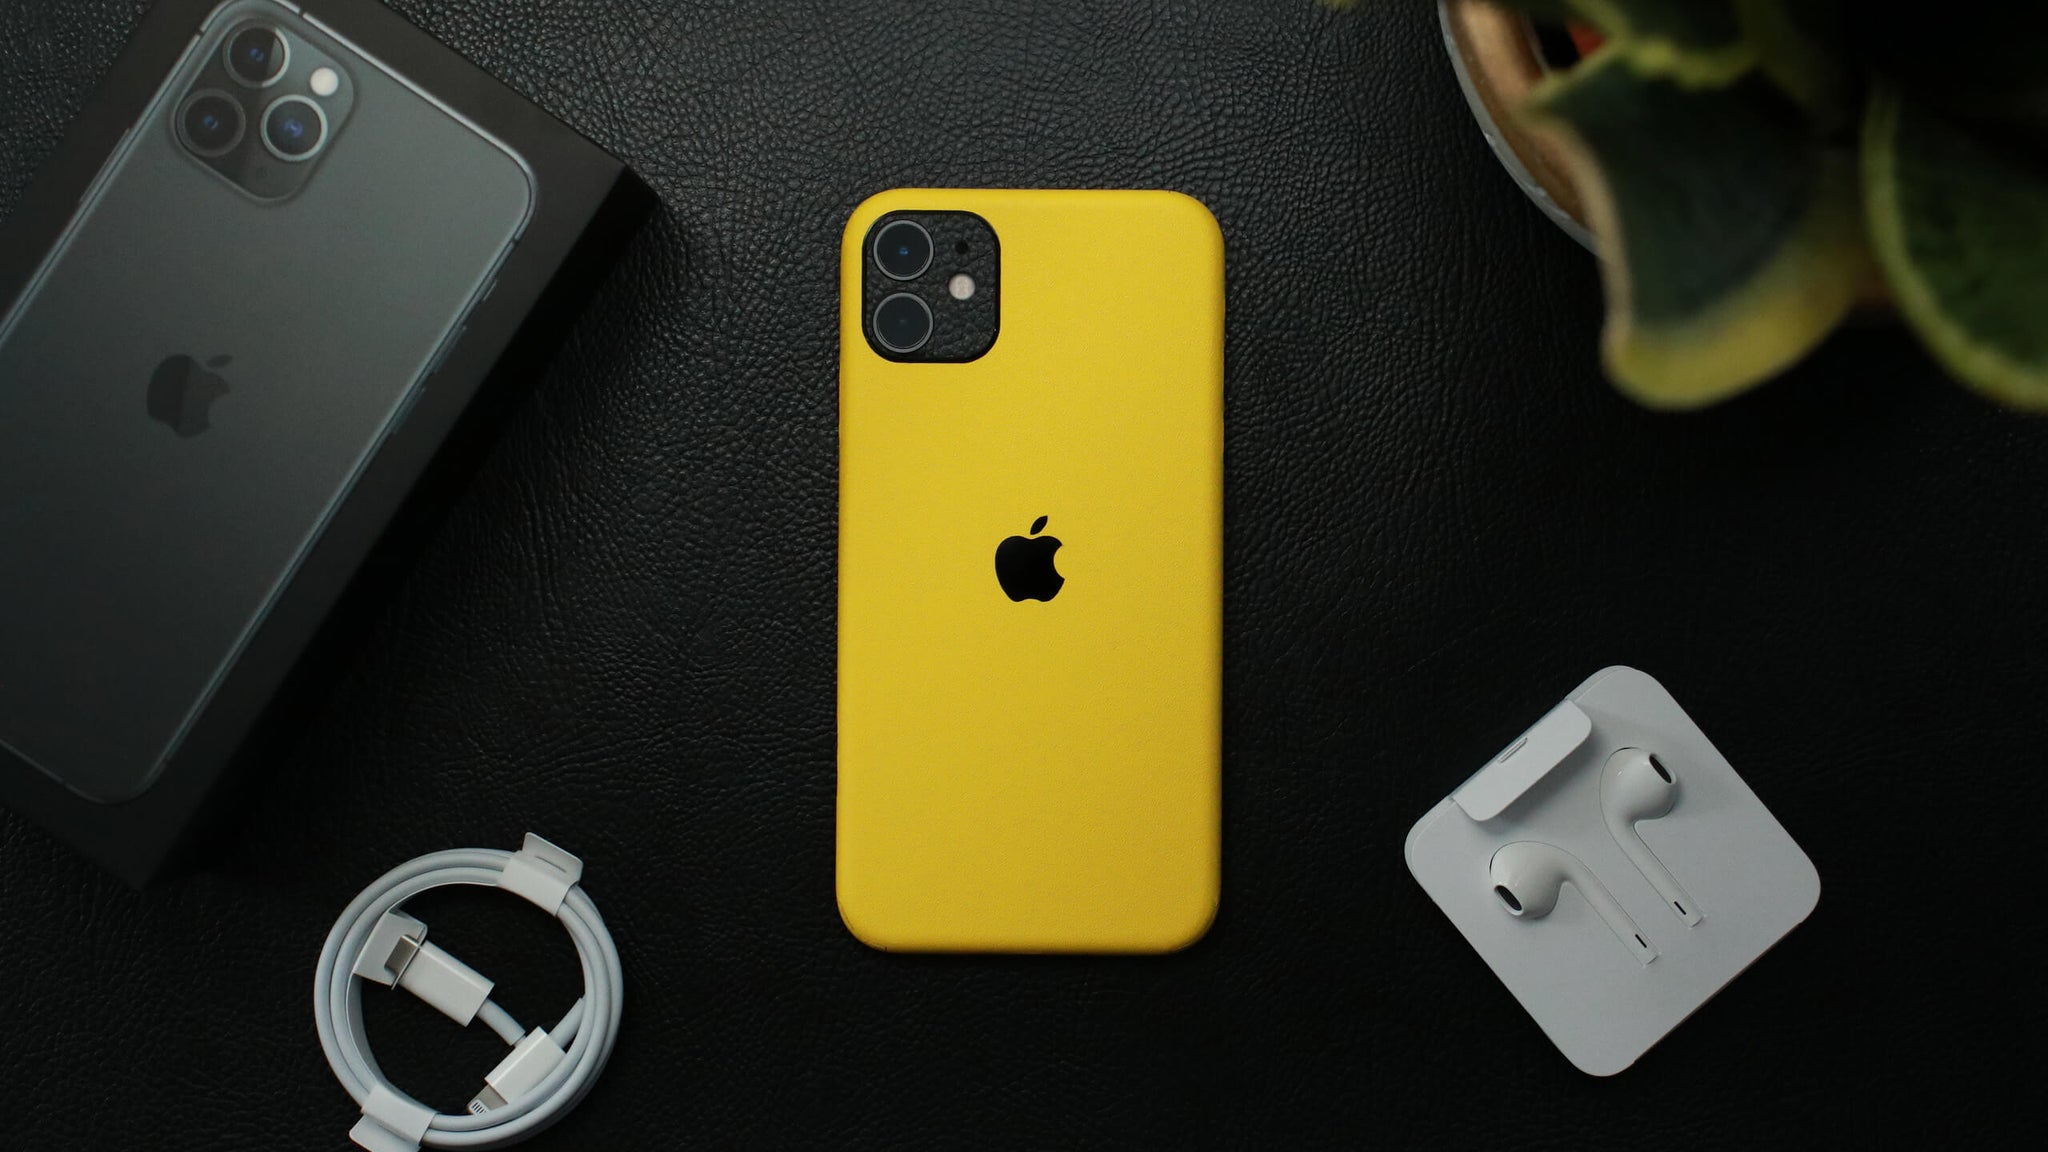 iPhone 11 Textured Matt Yellow Skins